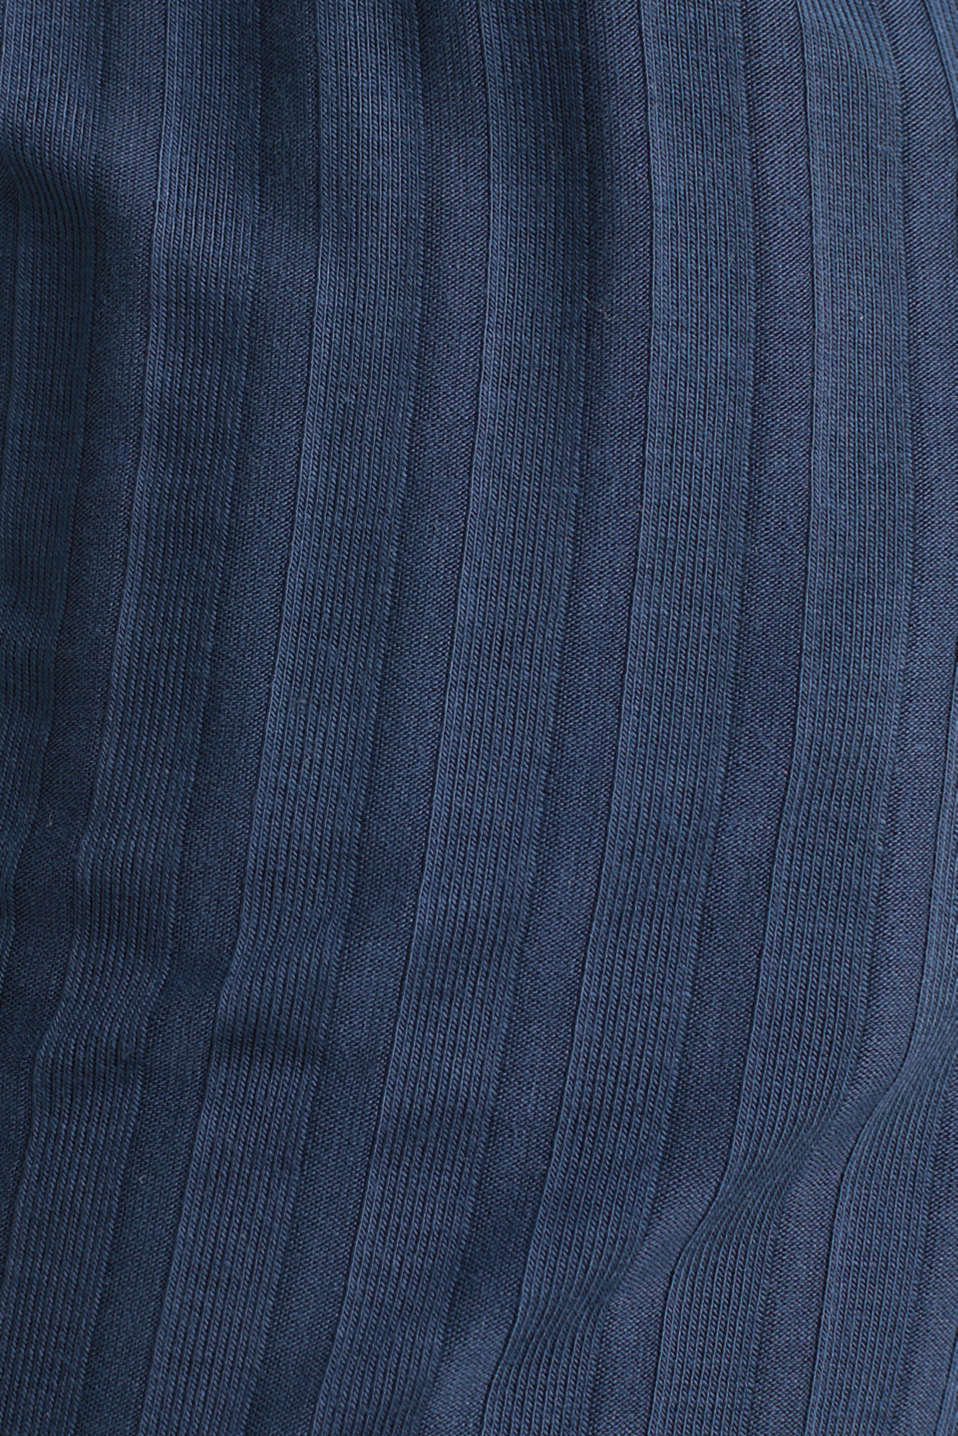 Stretch jersey trousers with a ribbed texture, NAVY 2, detail image number 3